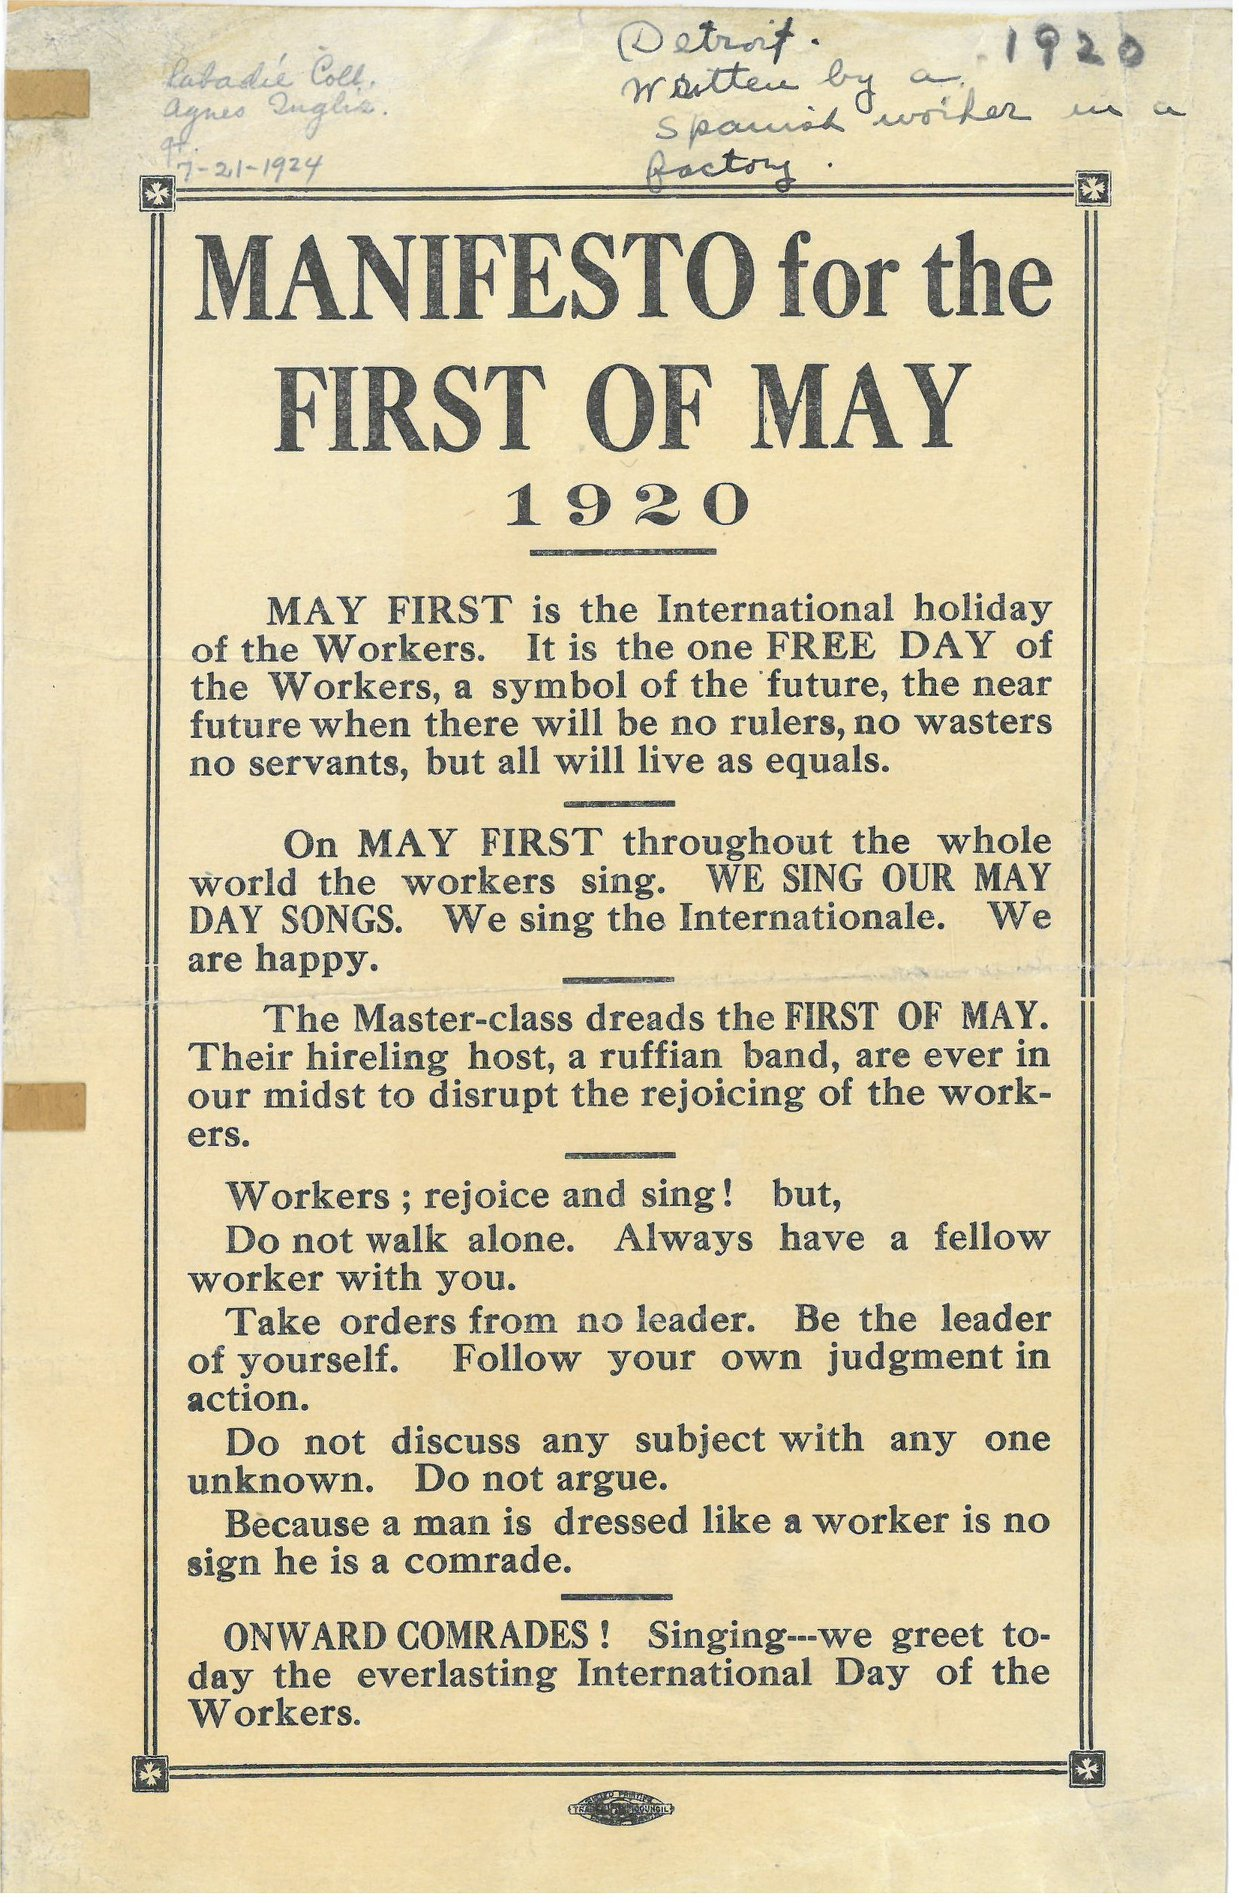 This May Day flyer was added to the Labadie Collection in 1924 by its curator, Agnes Inglis, who received it from a Spanish factory worker in Detroit.